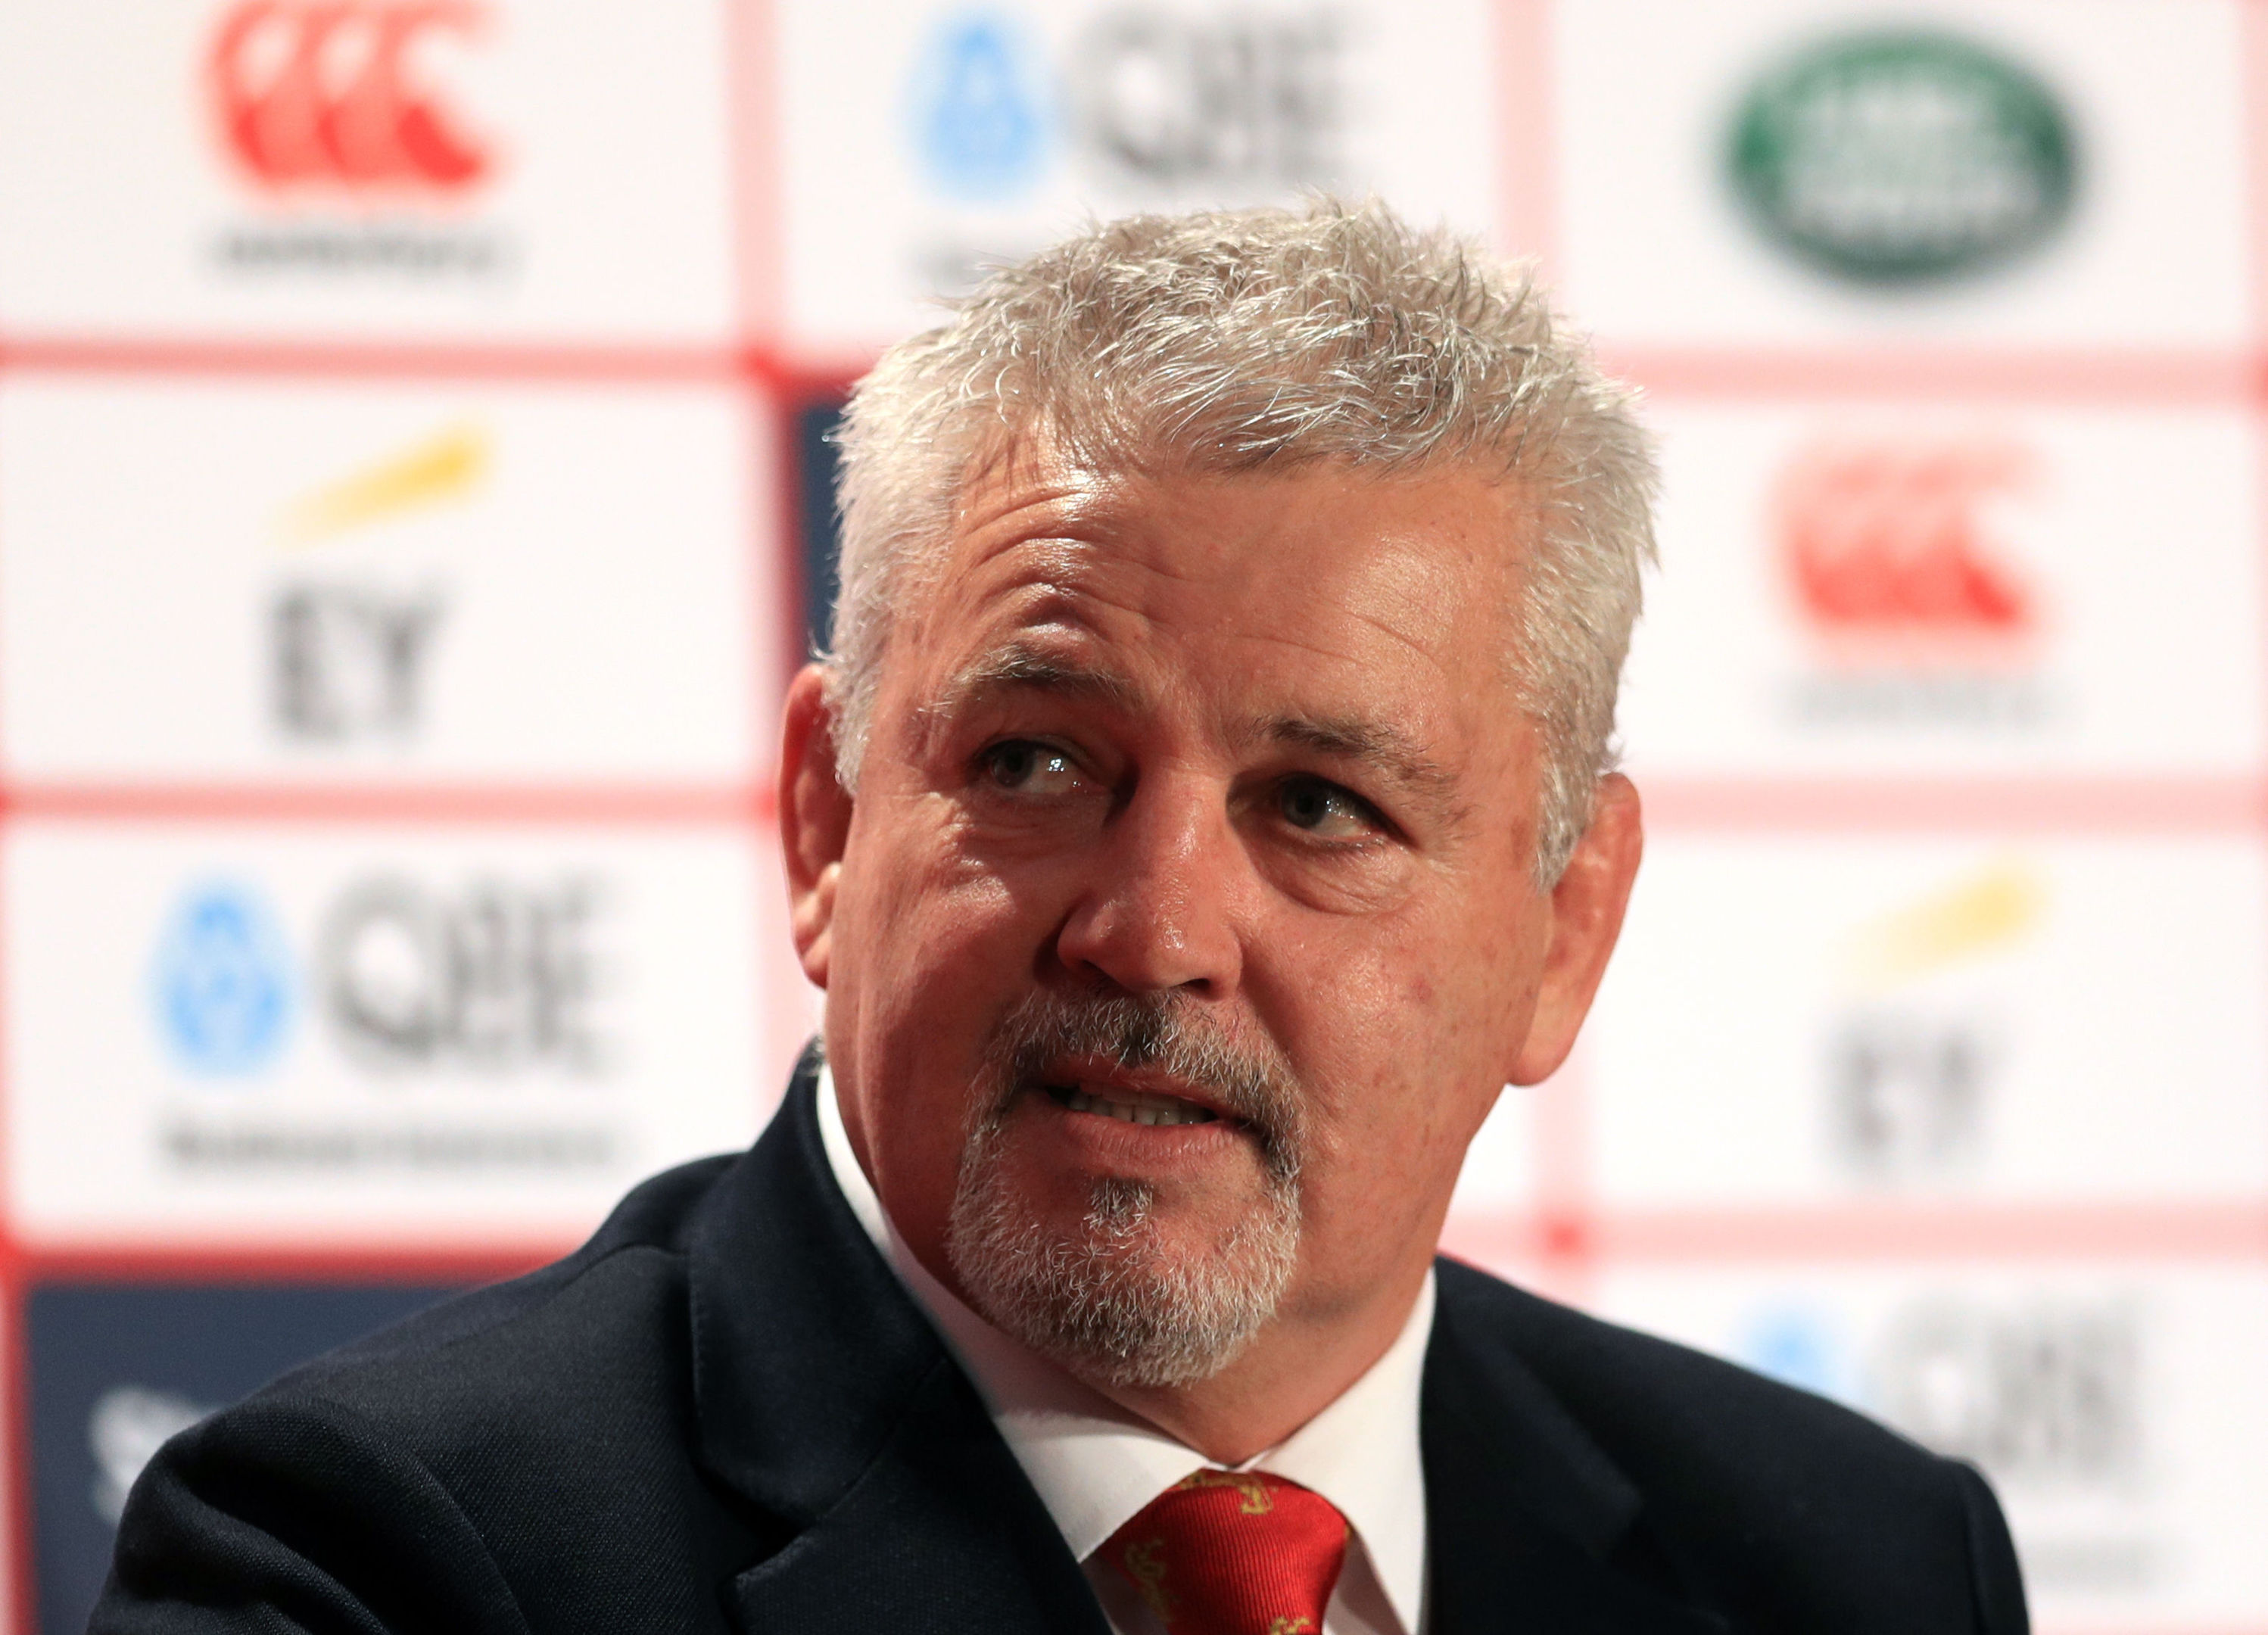 Lions head coach didn't even know the names of Scottish players he was watching, claimed Ian McLauchlan.